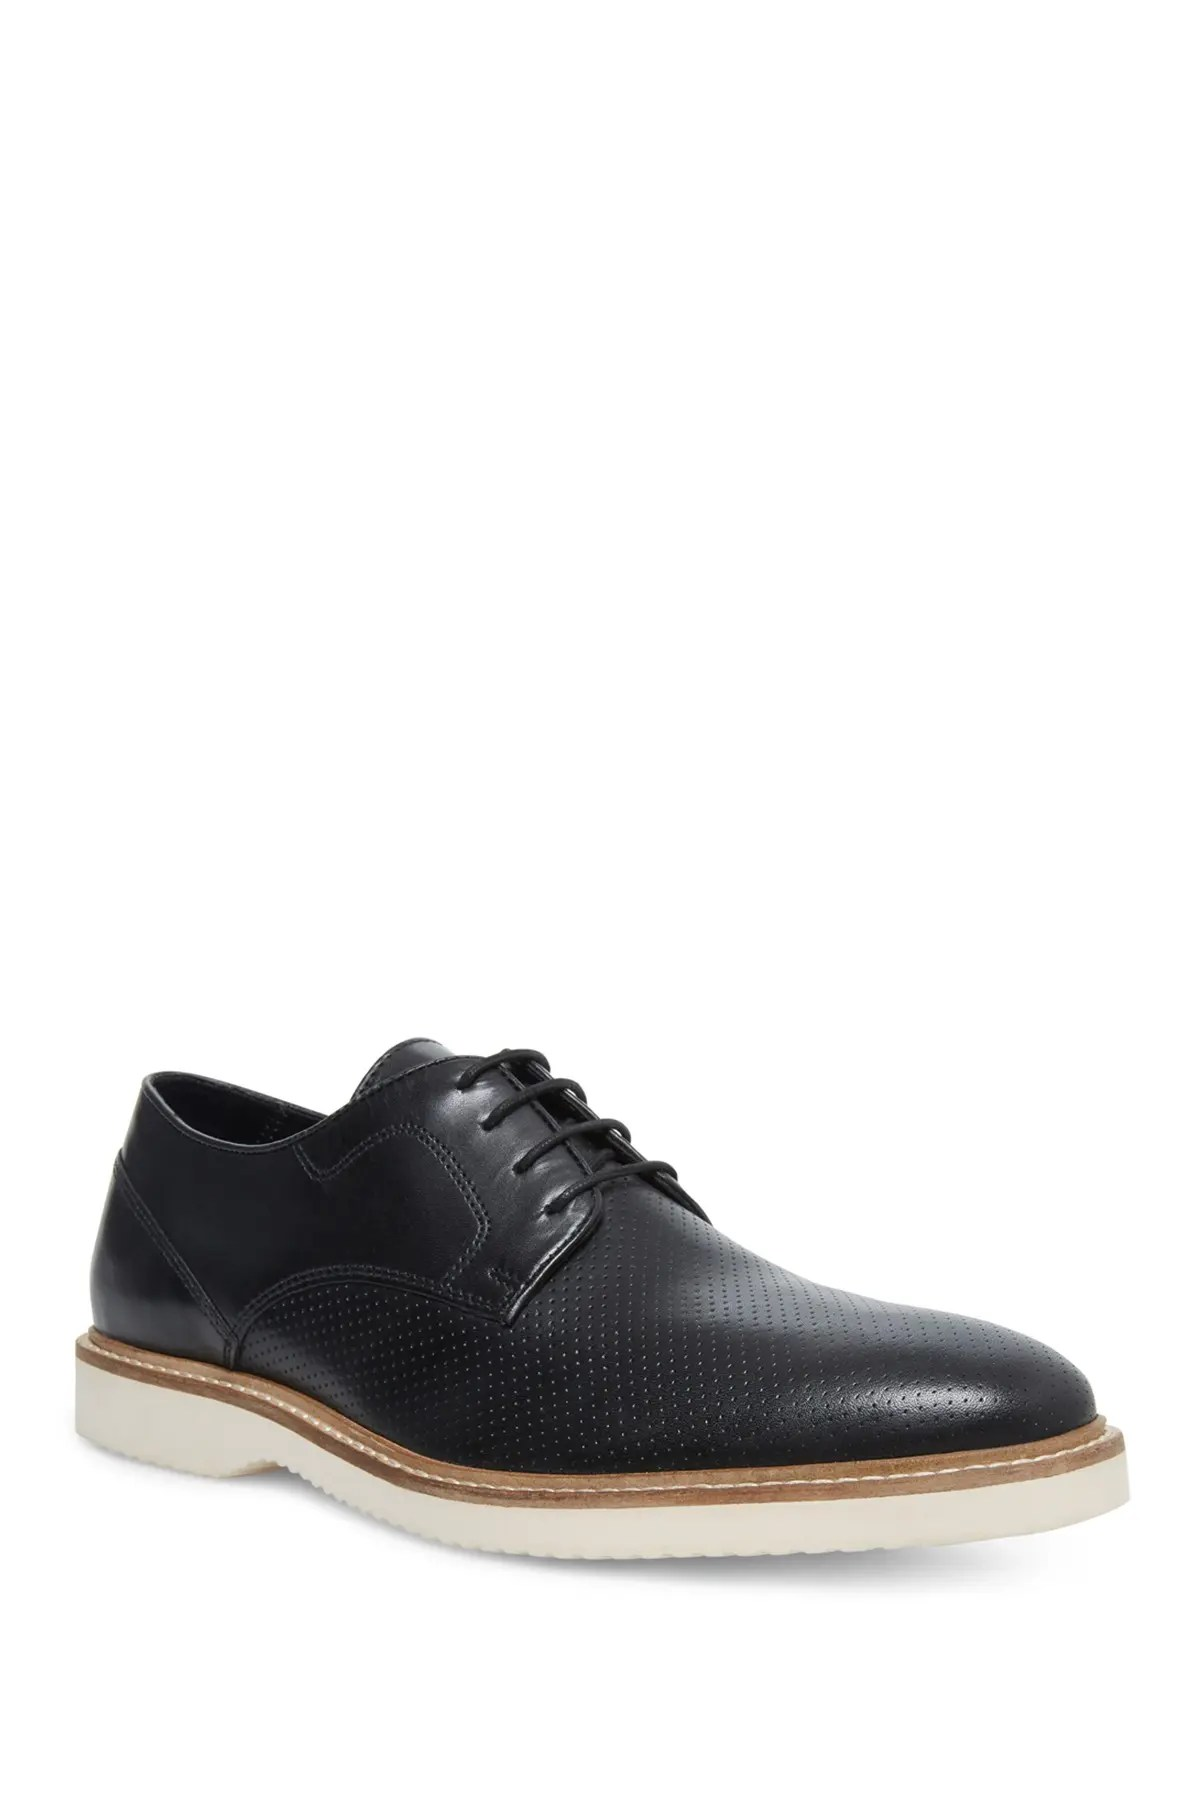 dress shoes clearance nordstrom rack